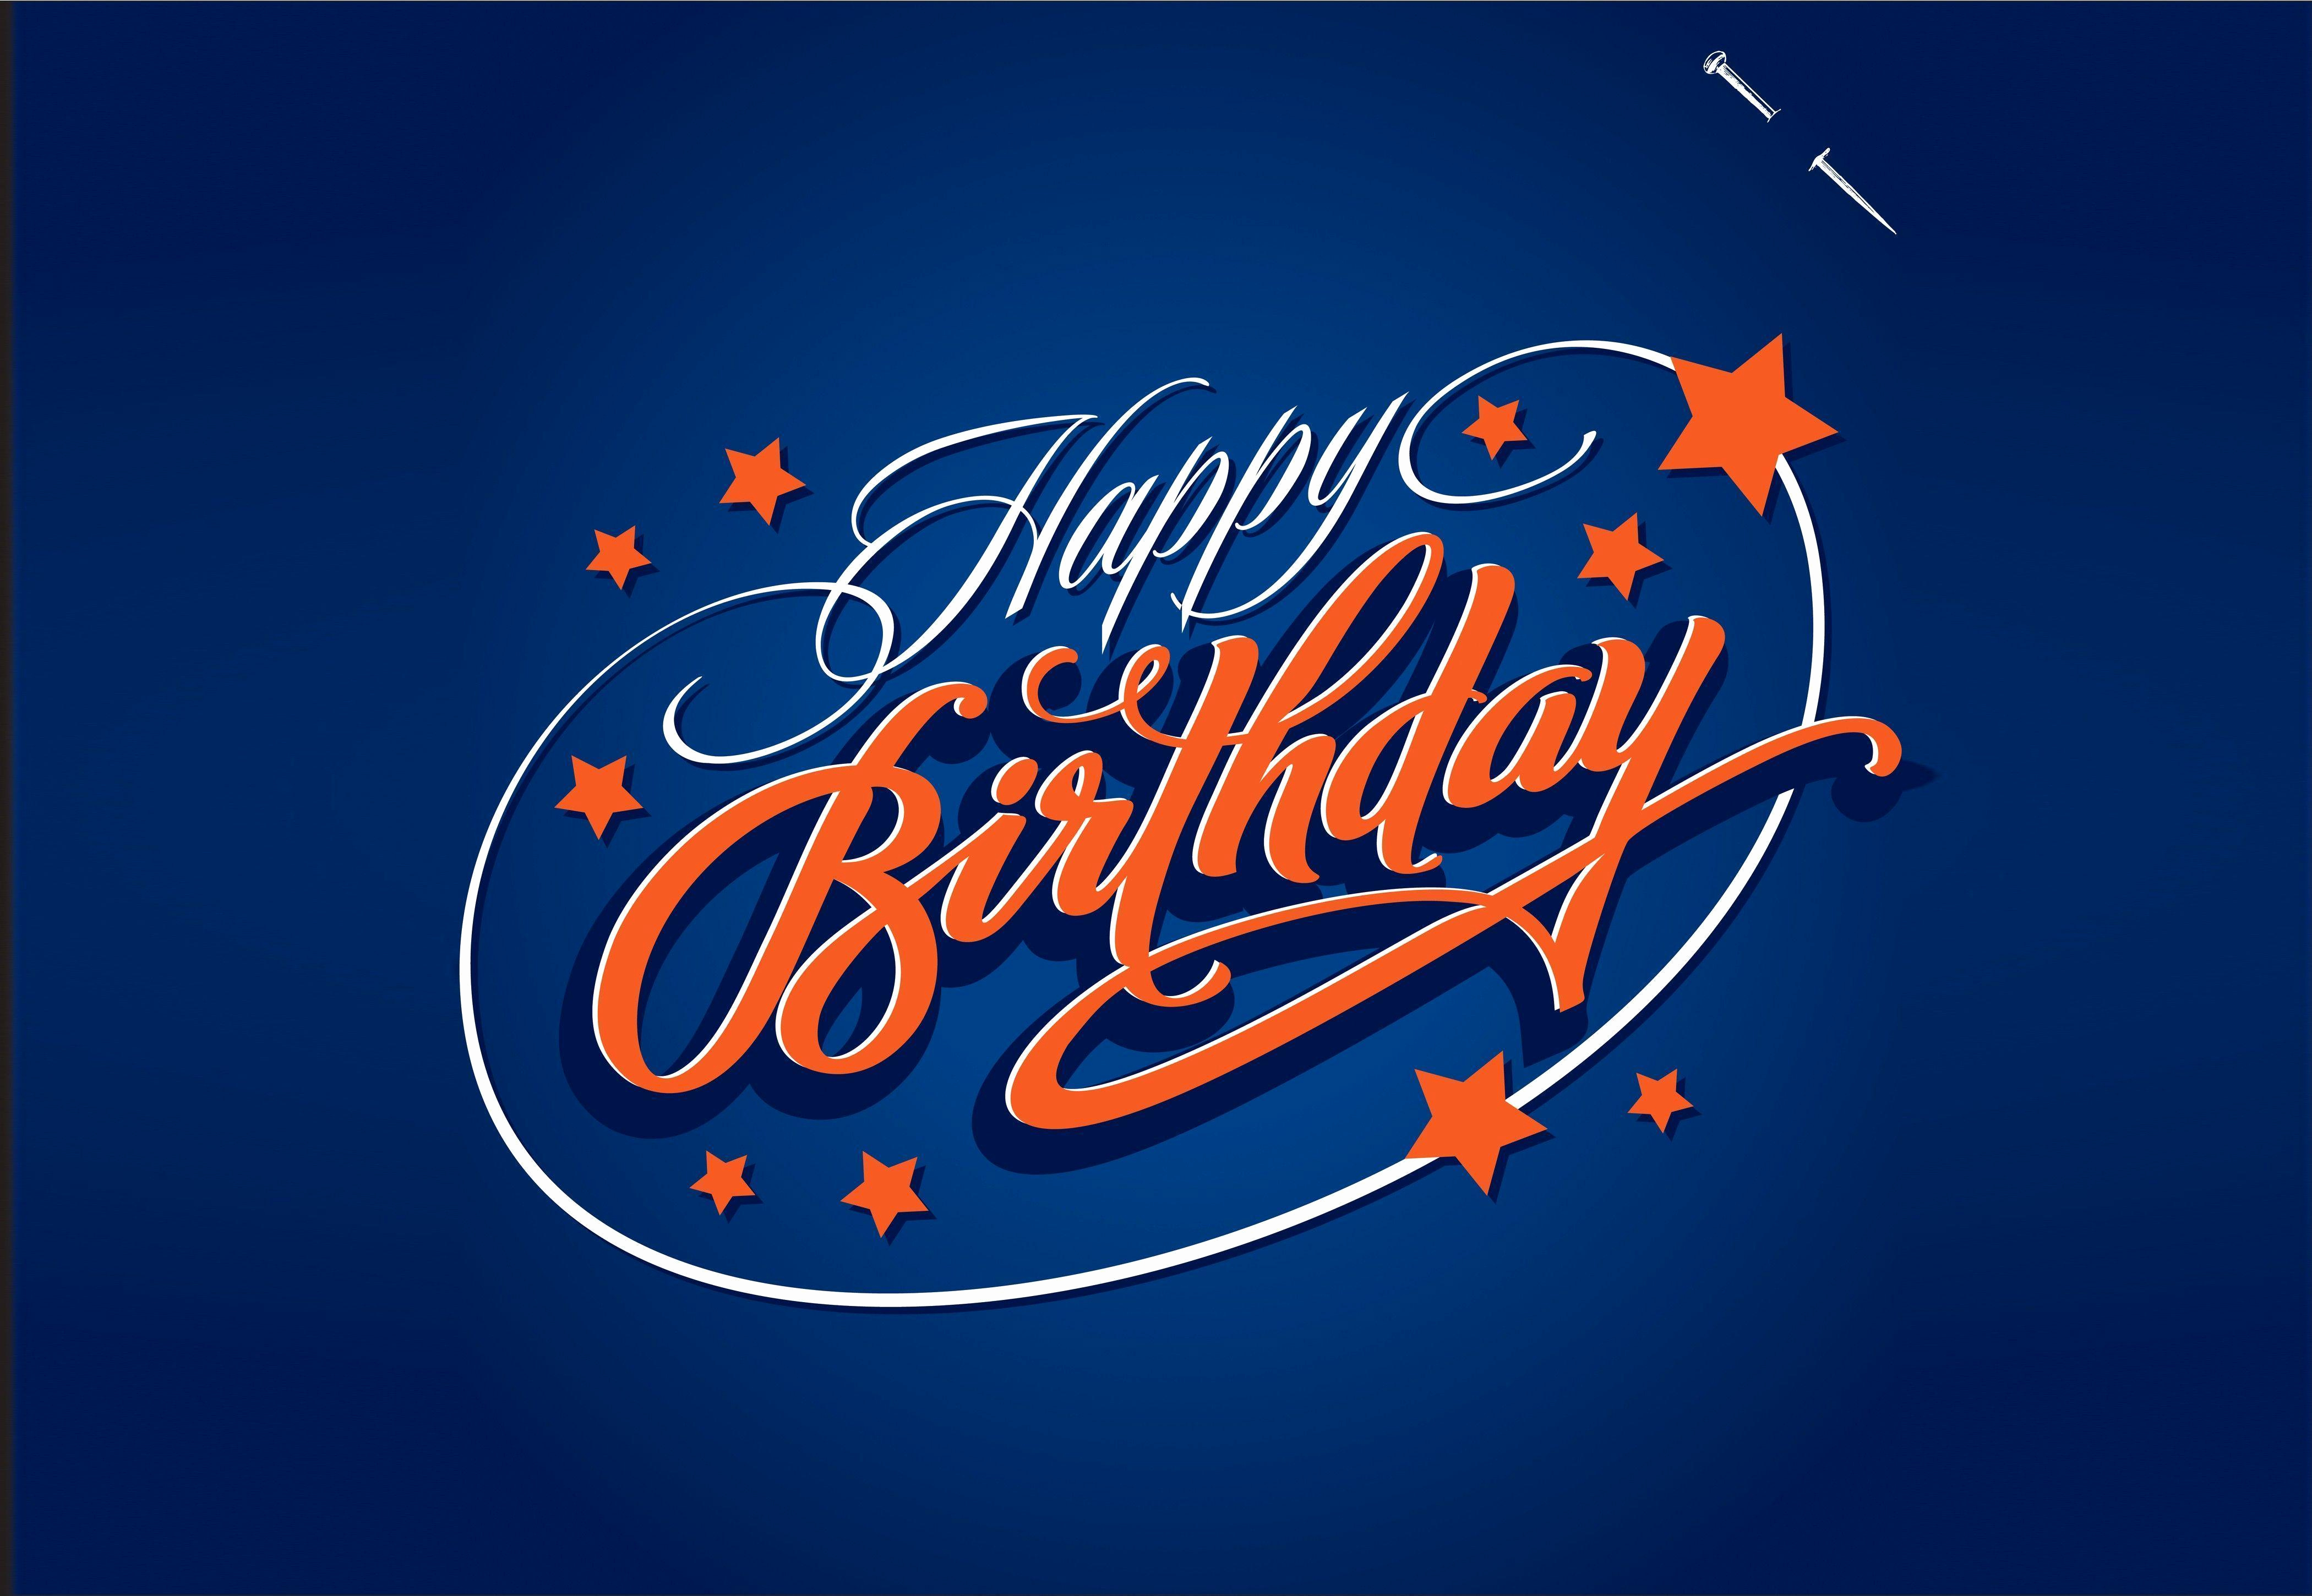 Happy Bday Wallpapers Free Unique Happy Birthday Wallpaper Hd Best Collection 20 Images